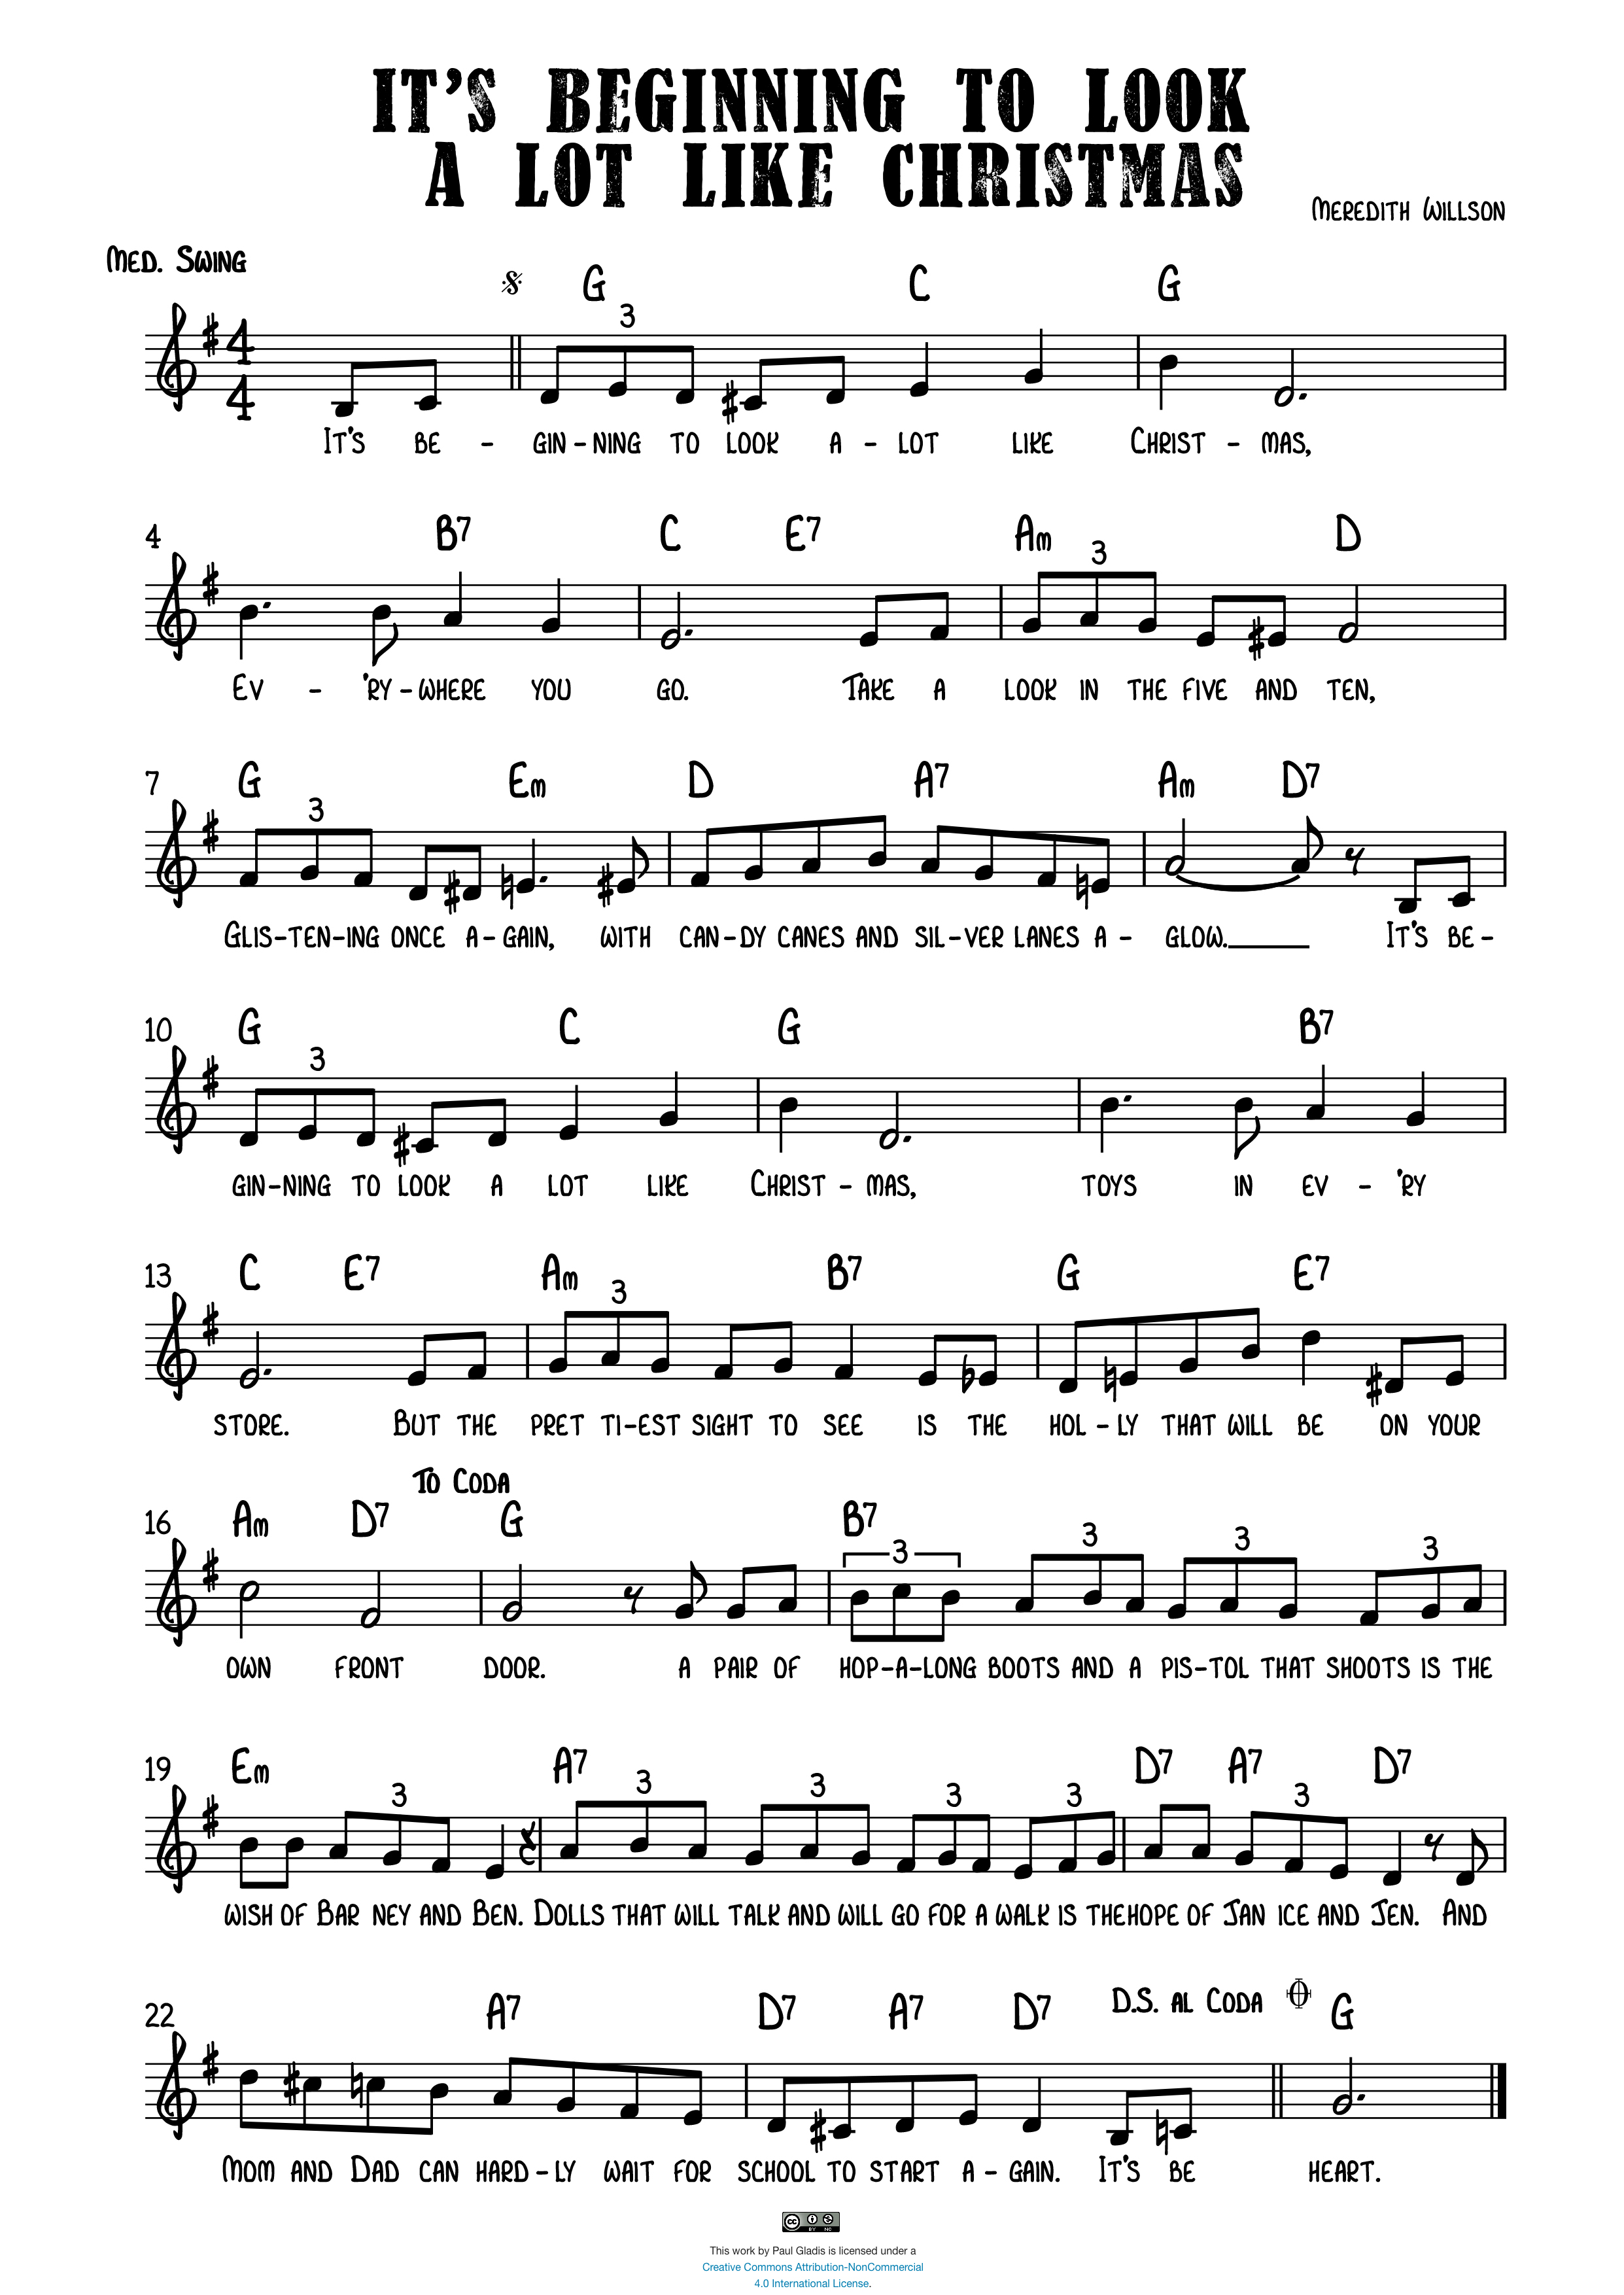 Sheet Music by Paul Gladis » It\'s Beginning to Look A Lot Like Christmas